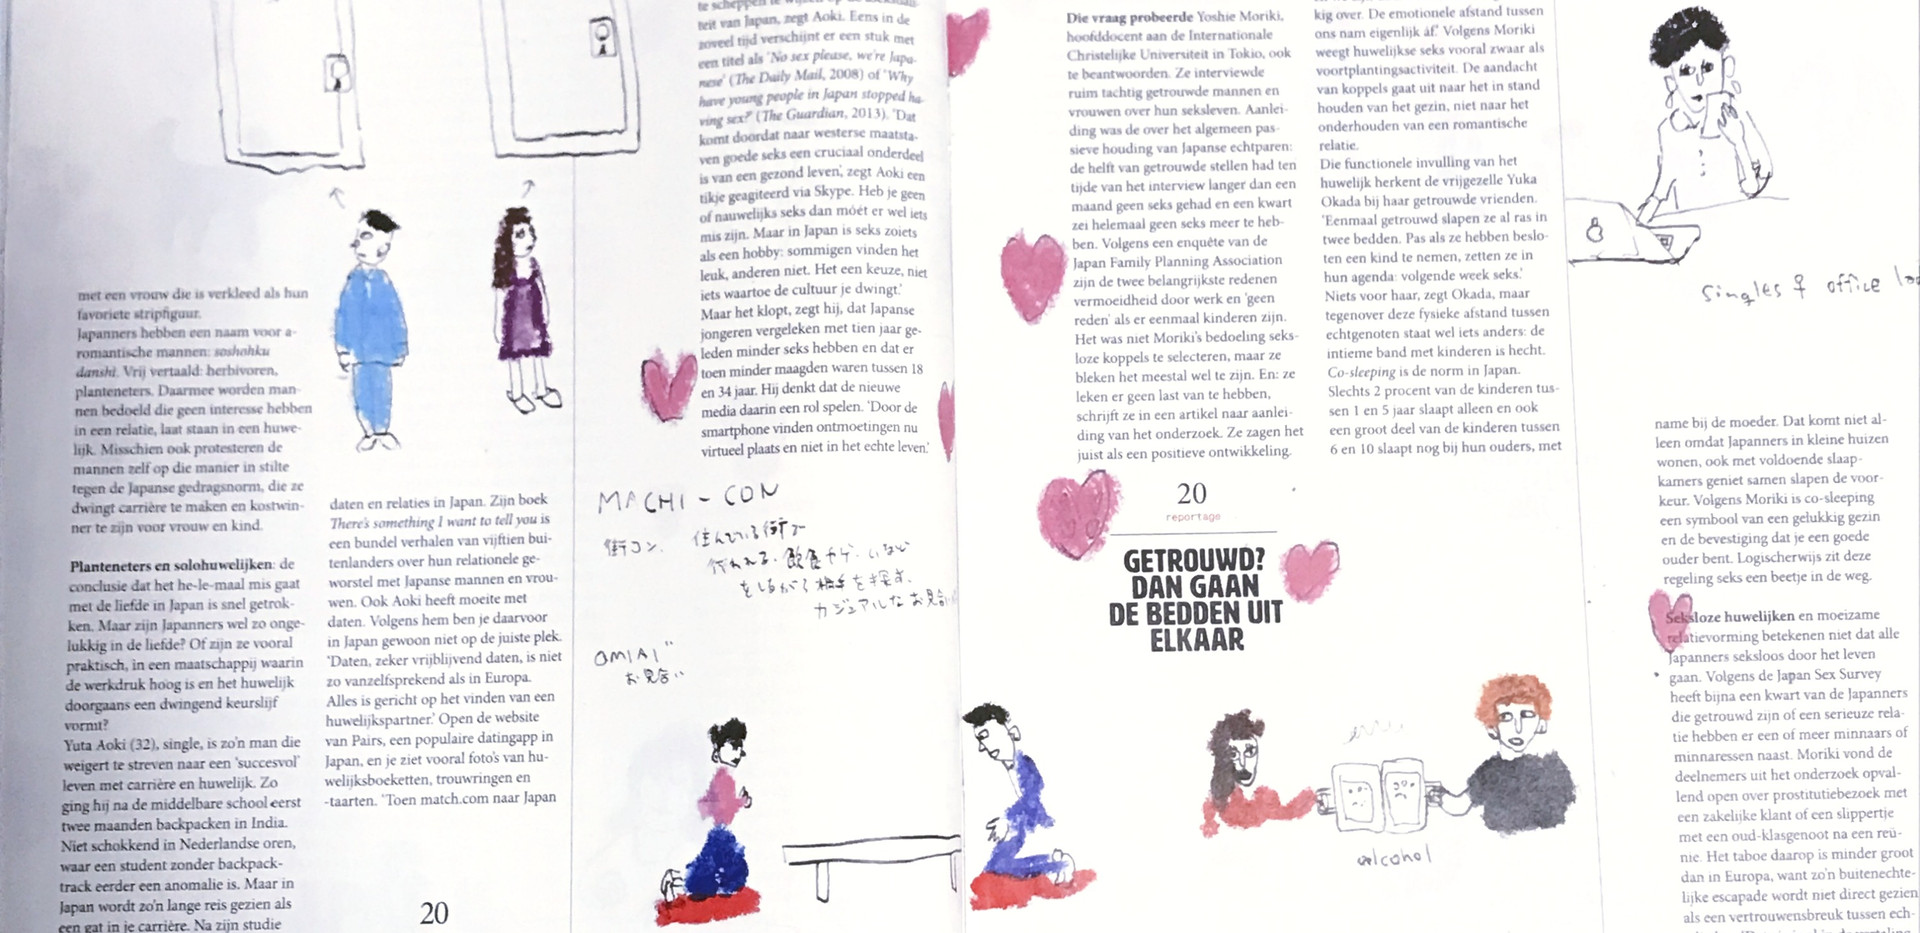 facing page of illustrations published articles 2/3